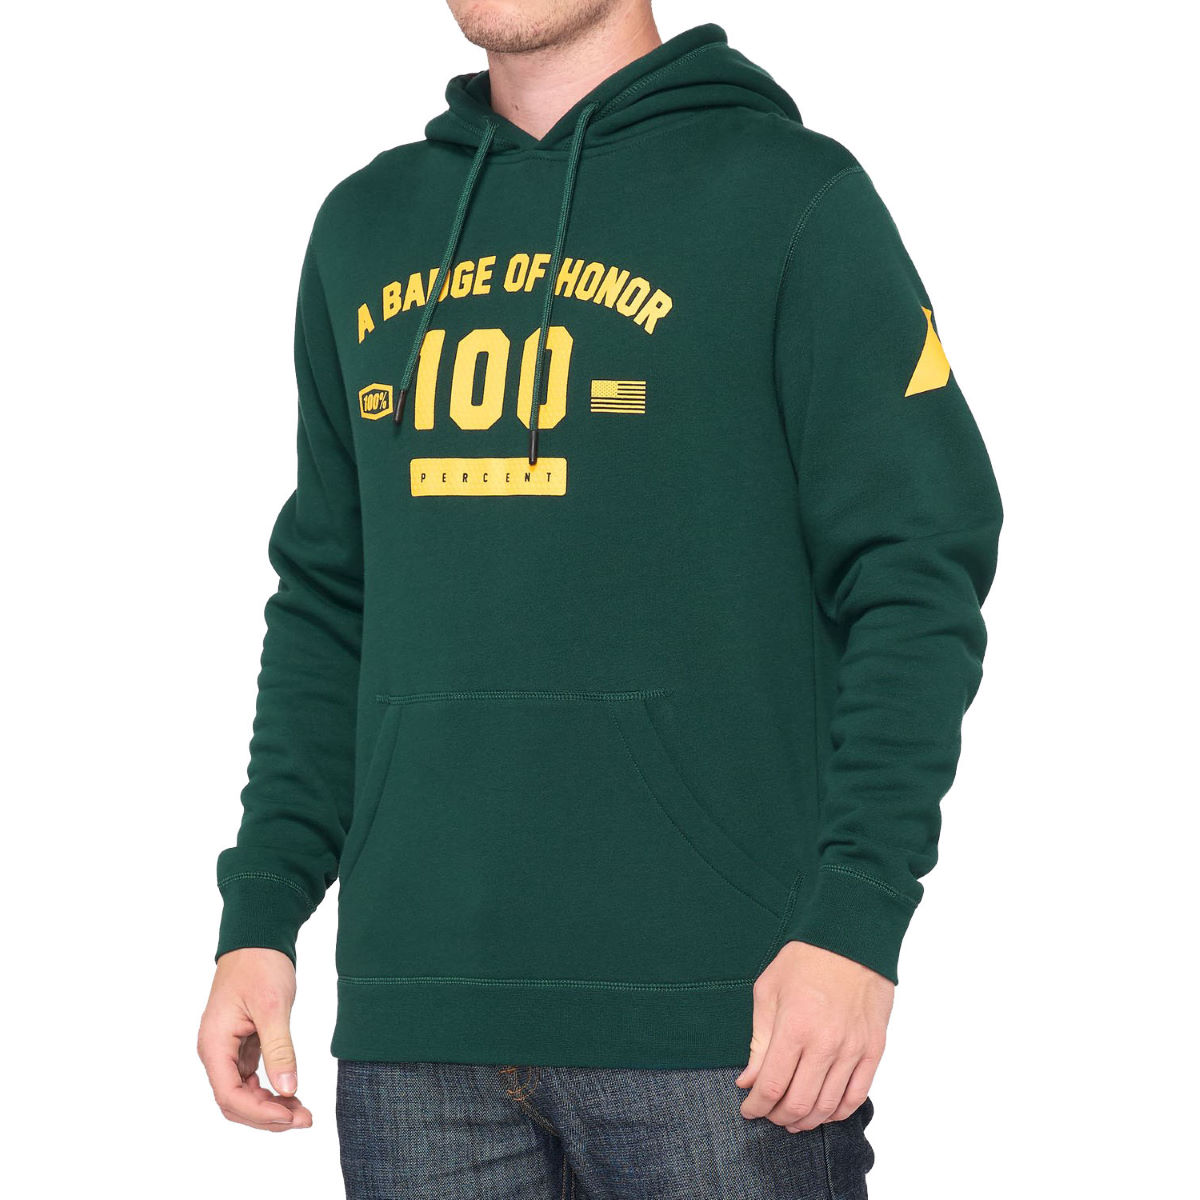 100% Tribute Hooded Pullover Sweatshirt - Small Dark Green  Hoodies